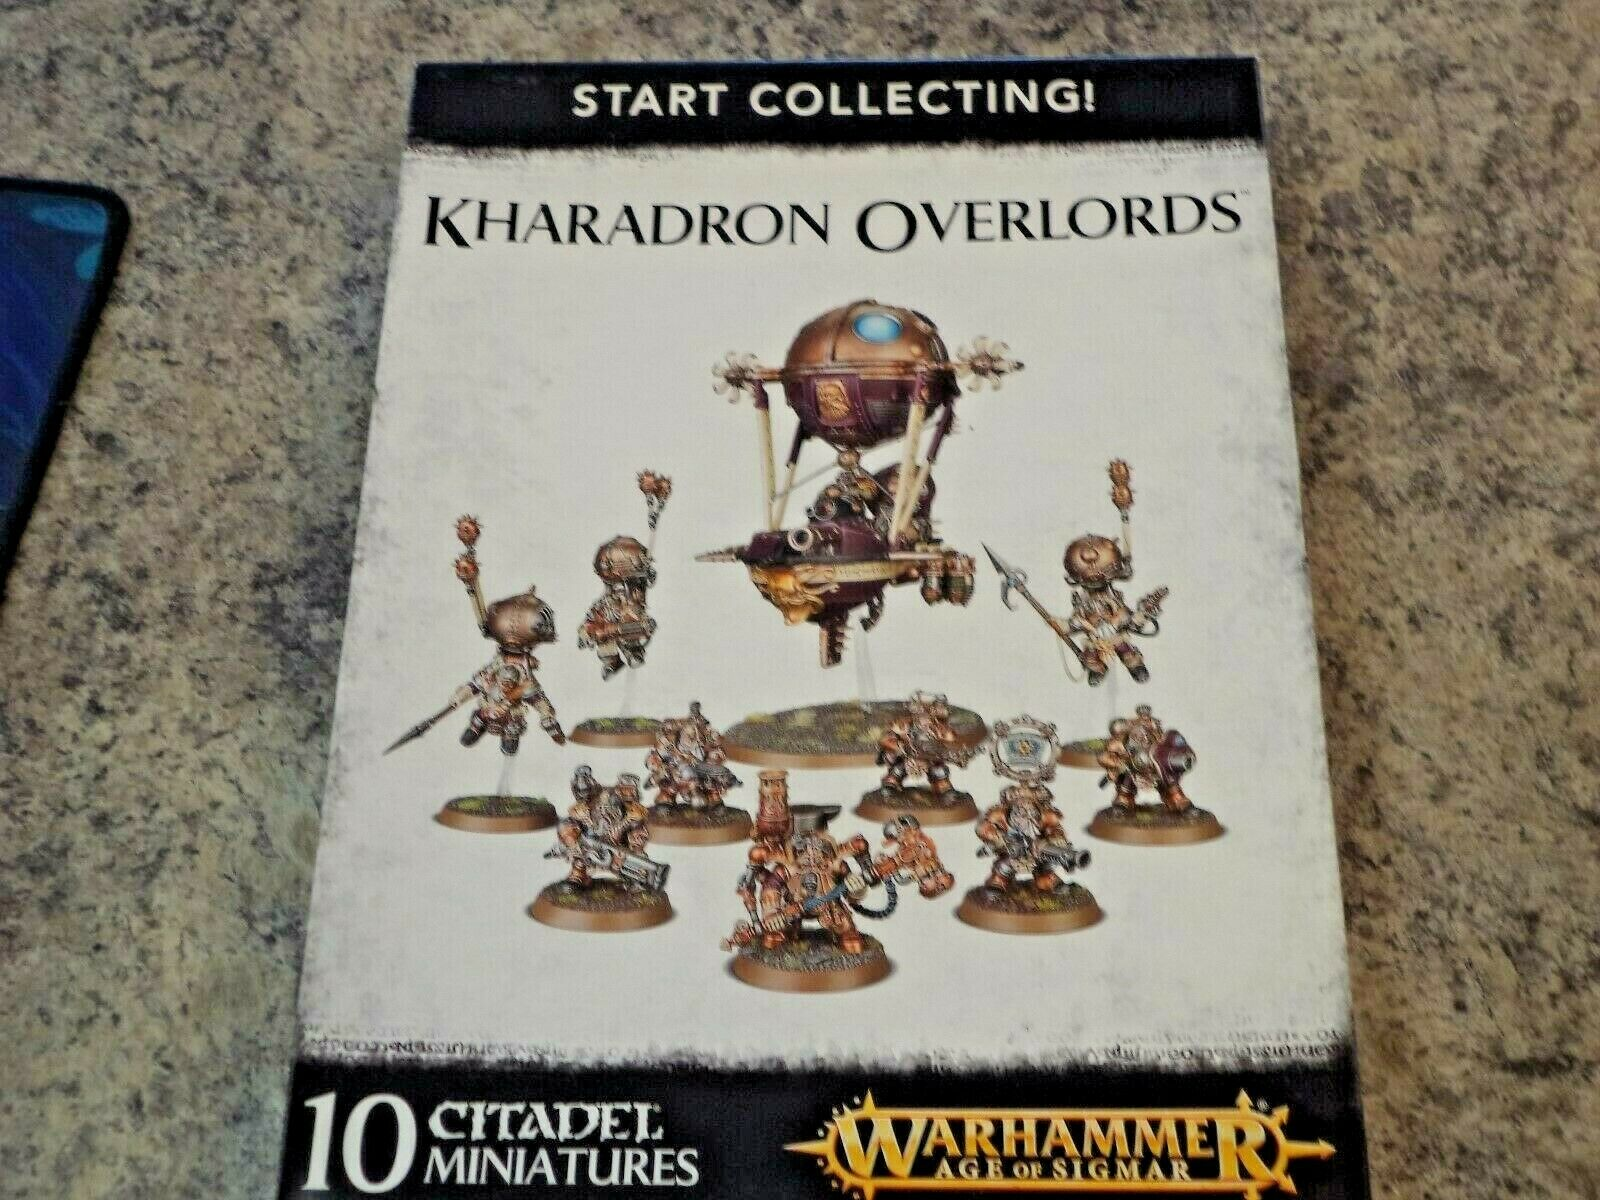 Start Collecting Kharadron Overlords Warhammer Age of Sigmar Fantasy Models New